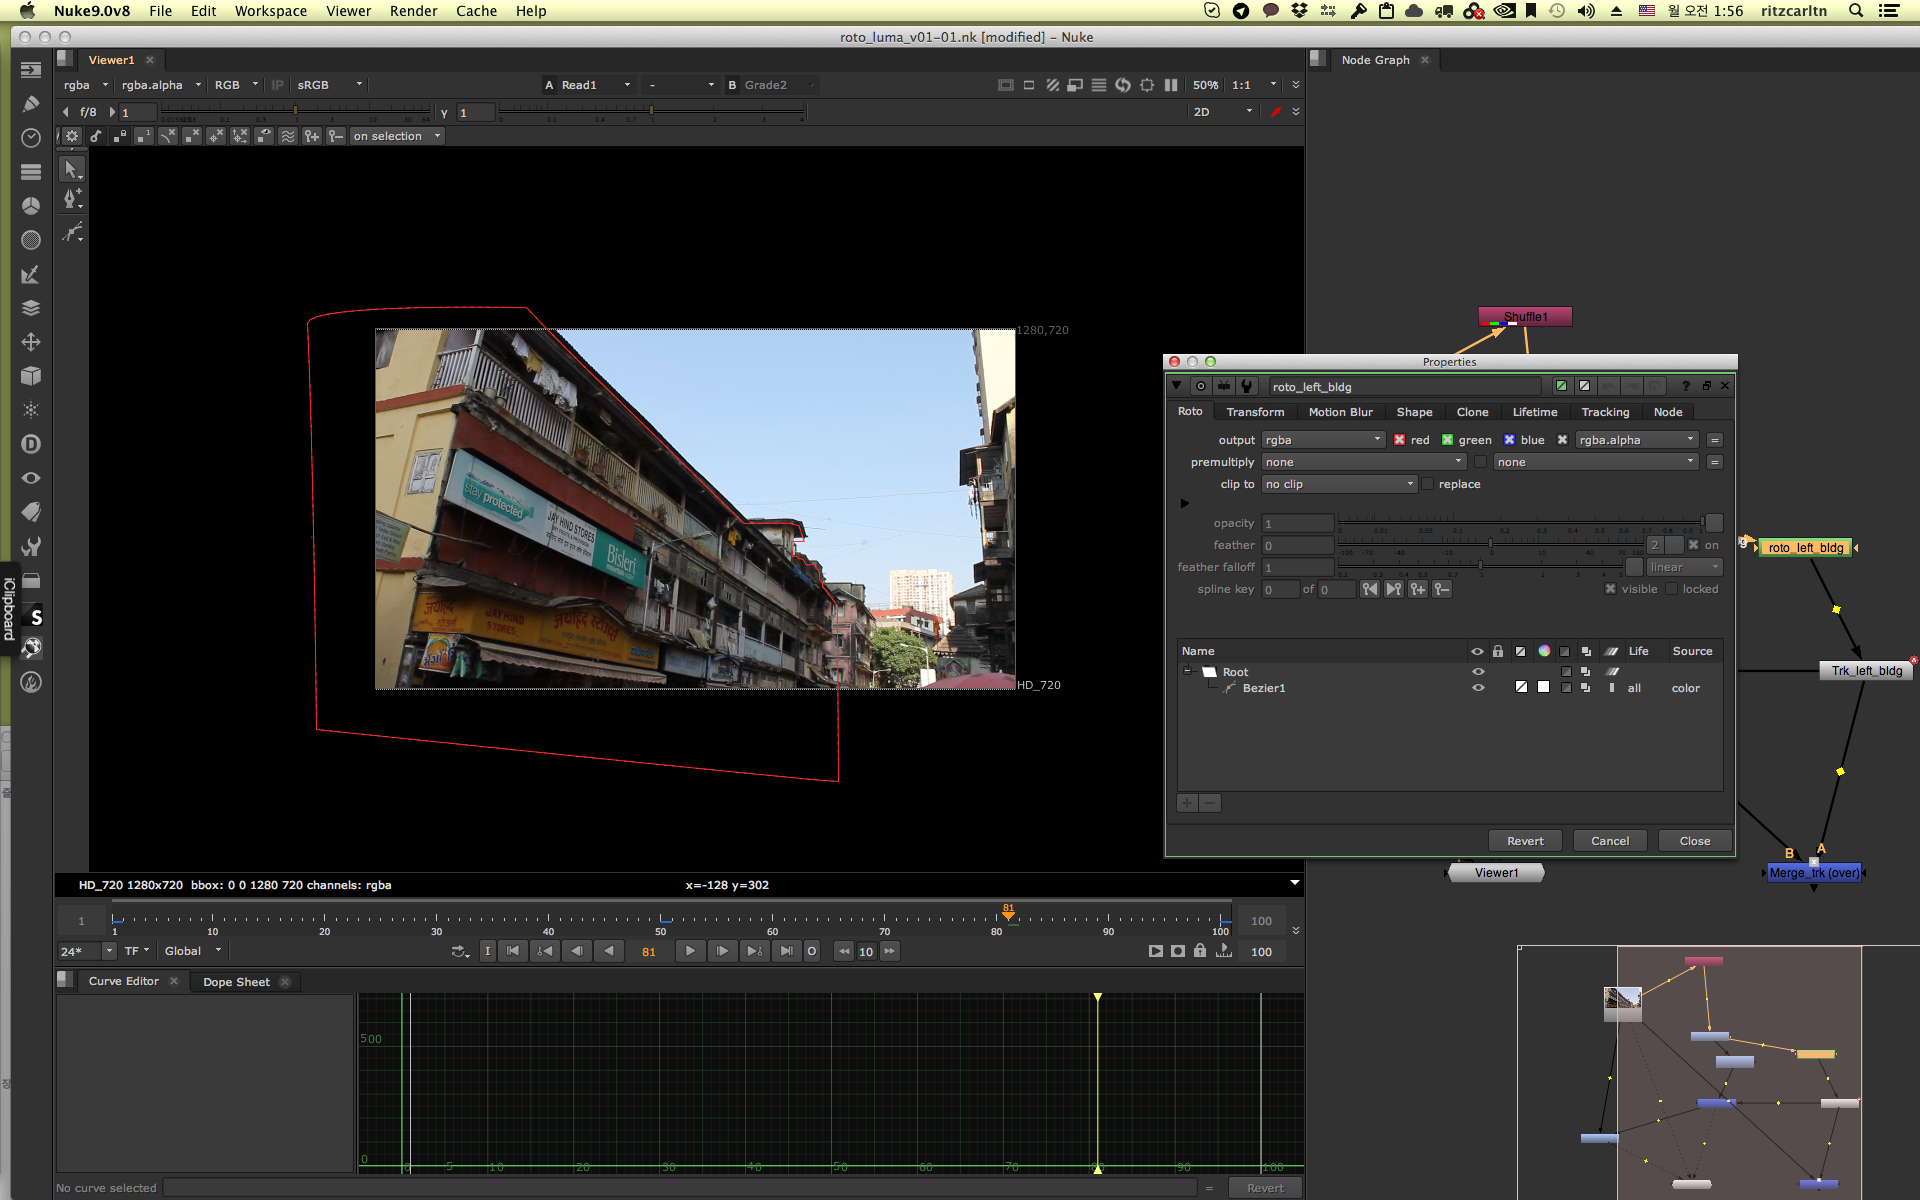 RotoScoping in Nuke and Mocha